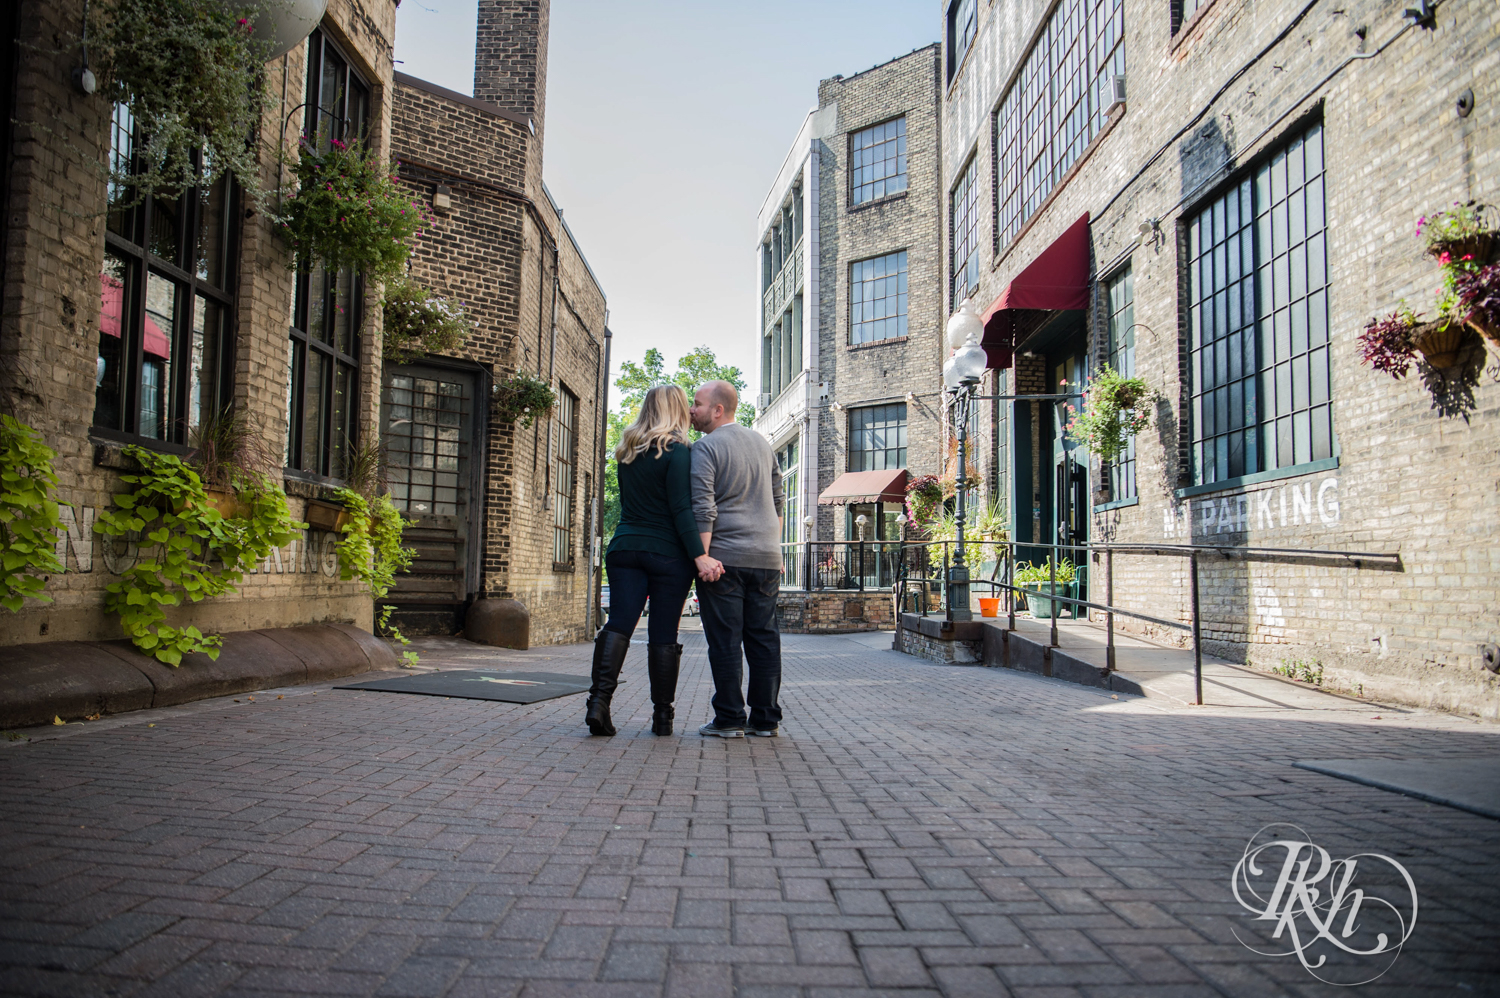 Shannon & Brian - Minnesota Engagement Photography - Loring Park - RKH Images - Blog  (13 of 16).jpg